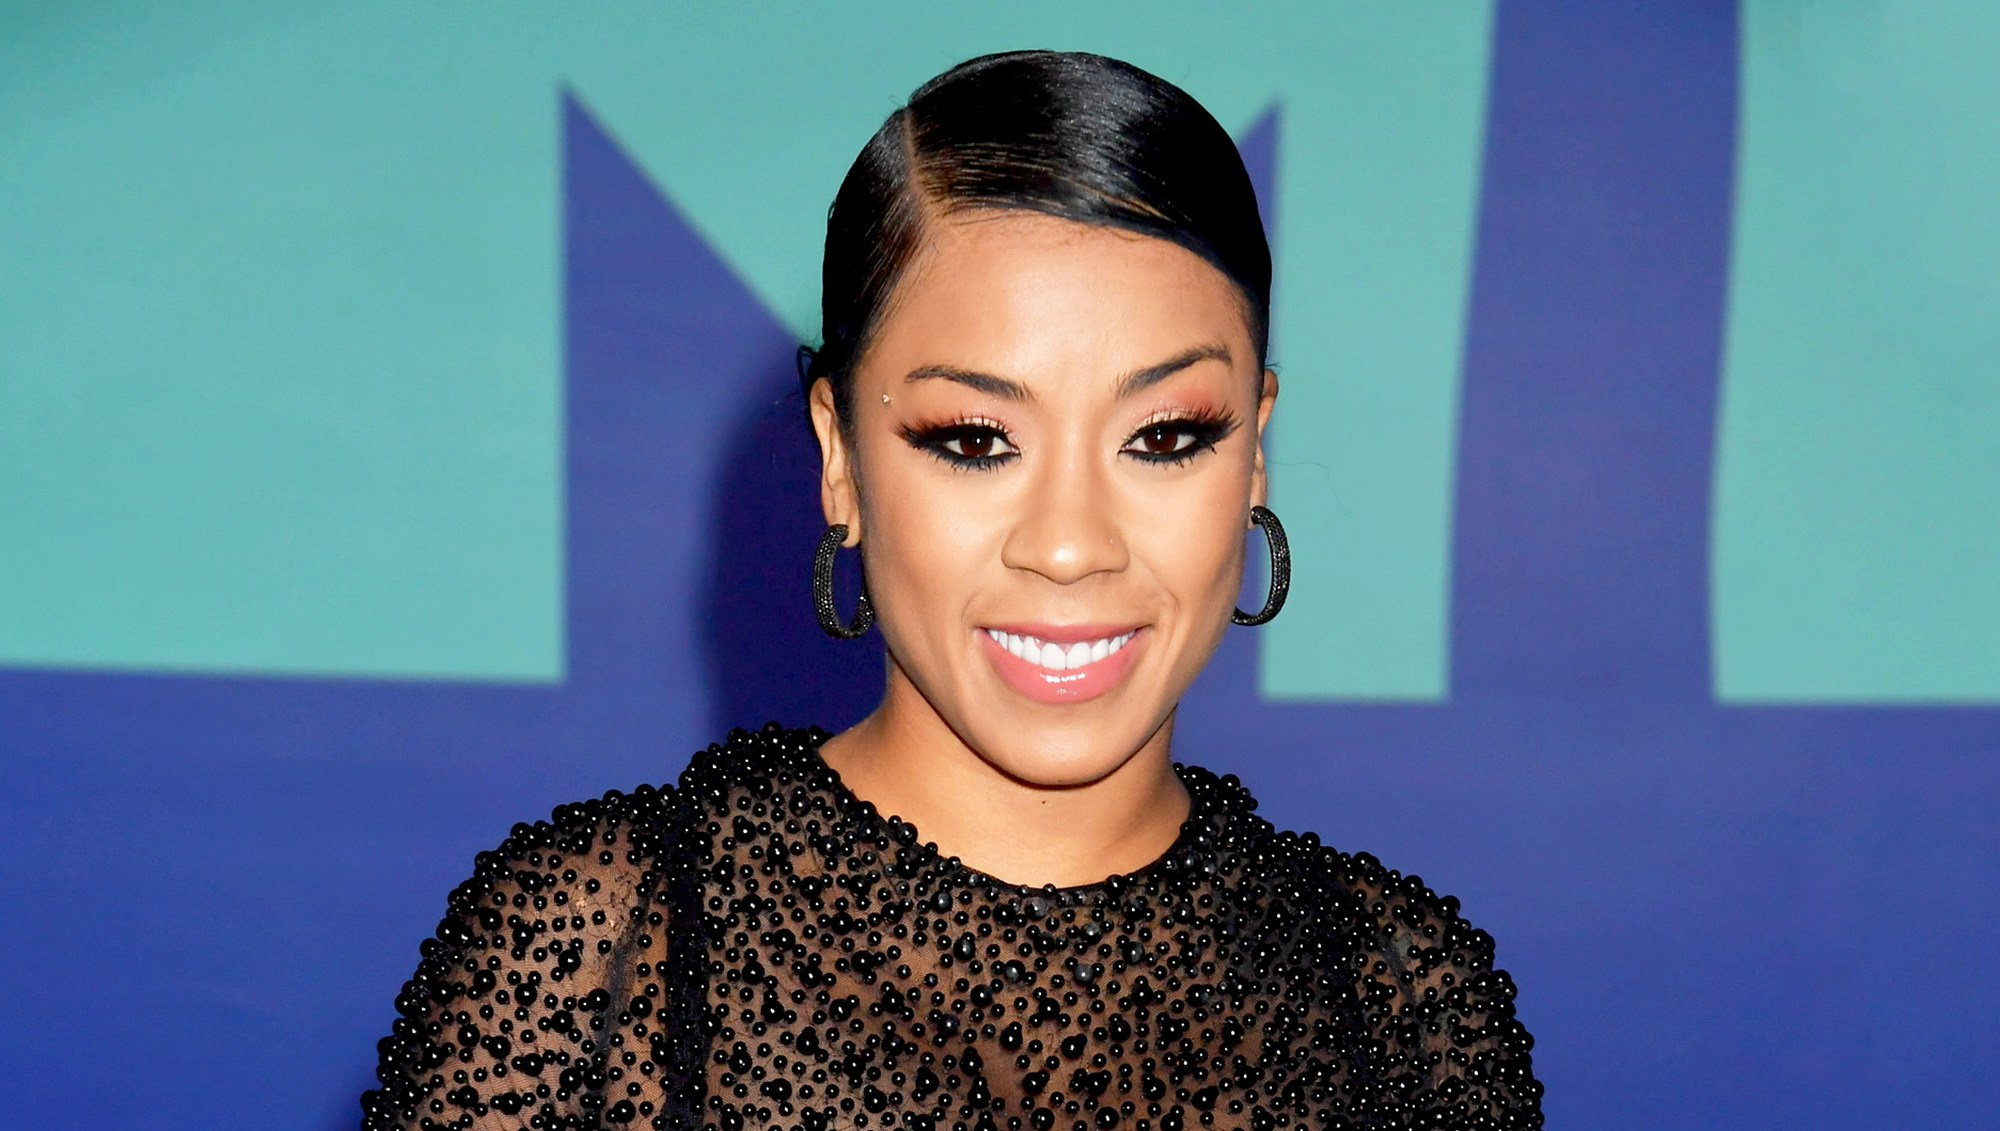 Keyshia Cole attends the 2017 MTV Video Music Awards at The Forum in Inglewood, California.